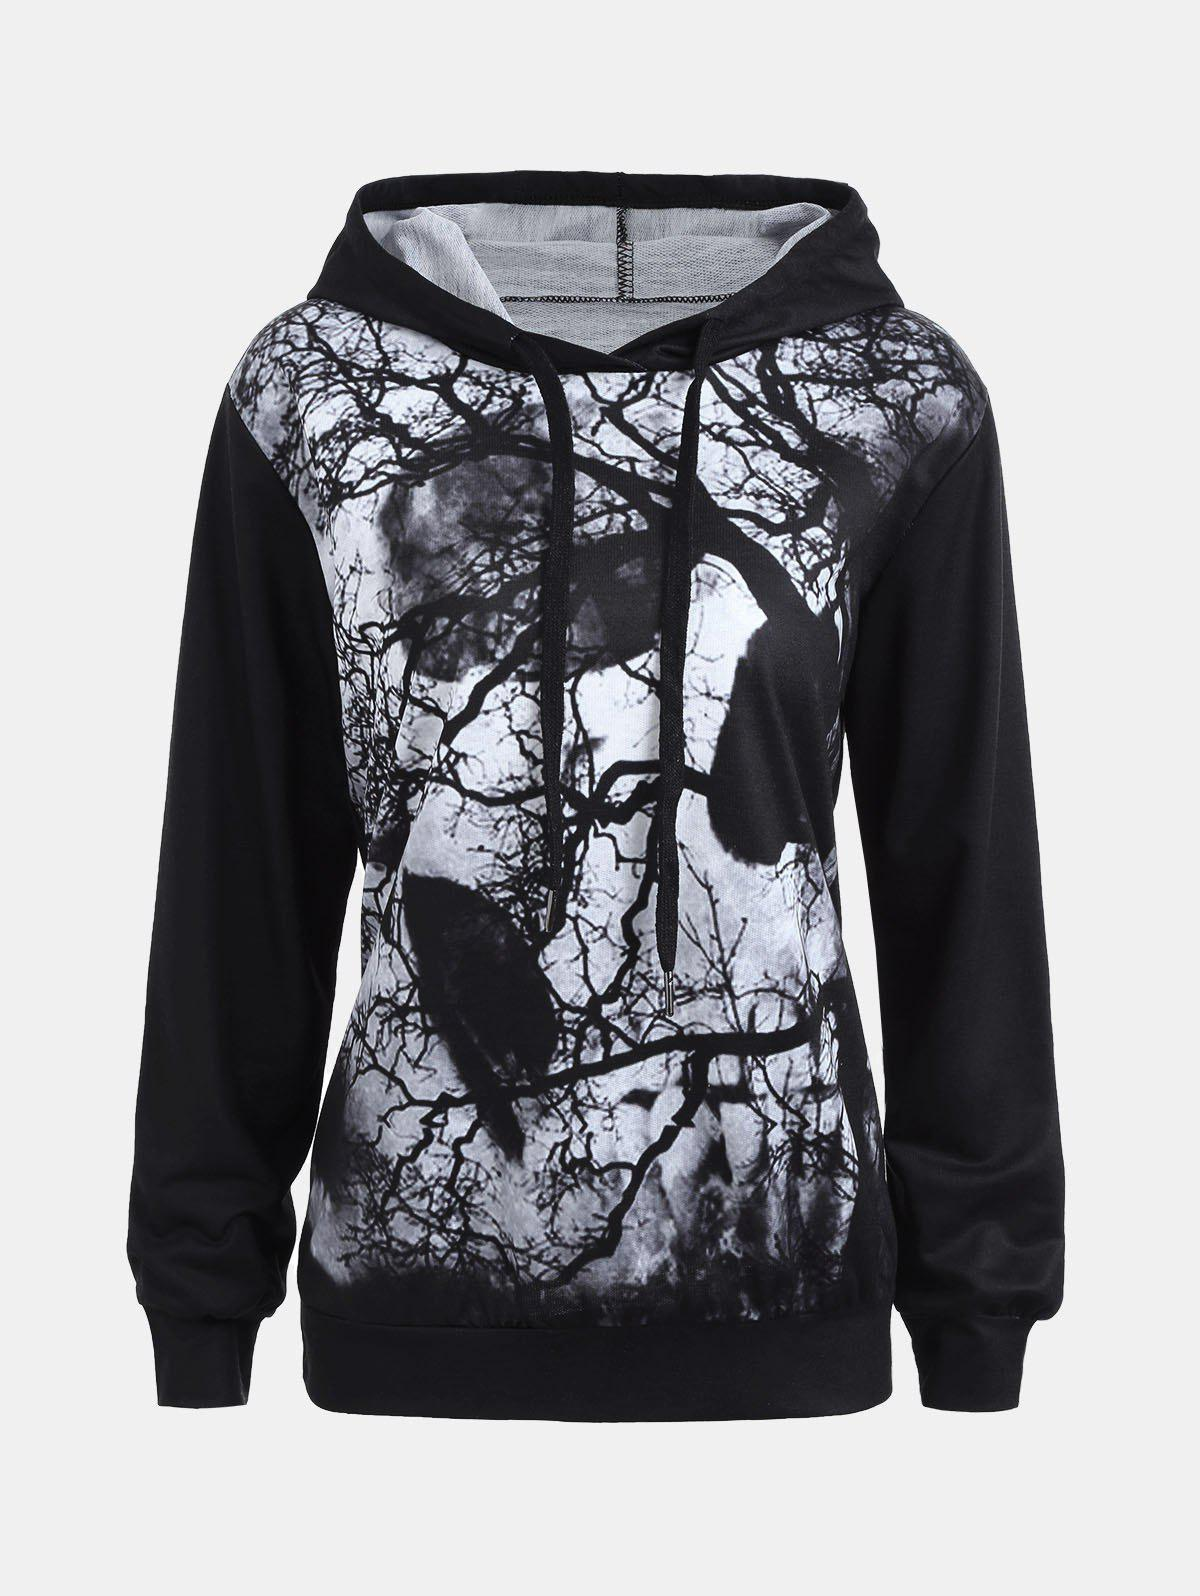 Dark Forest Skull Print Halloween HoodieWOMEN<br><br>Size: XL; Color: BLACK; Material: Polyester; Shirt Length: Regular; Sleeve Length: Full; Style: Gothic; Pattern Style: Plant,Print,Skulls; Elasticity: Micro-elastic; Season: Fall,Spring,Winter; Weight: 0.3300kg; Package Contents: 1 x Hoodie;